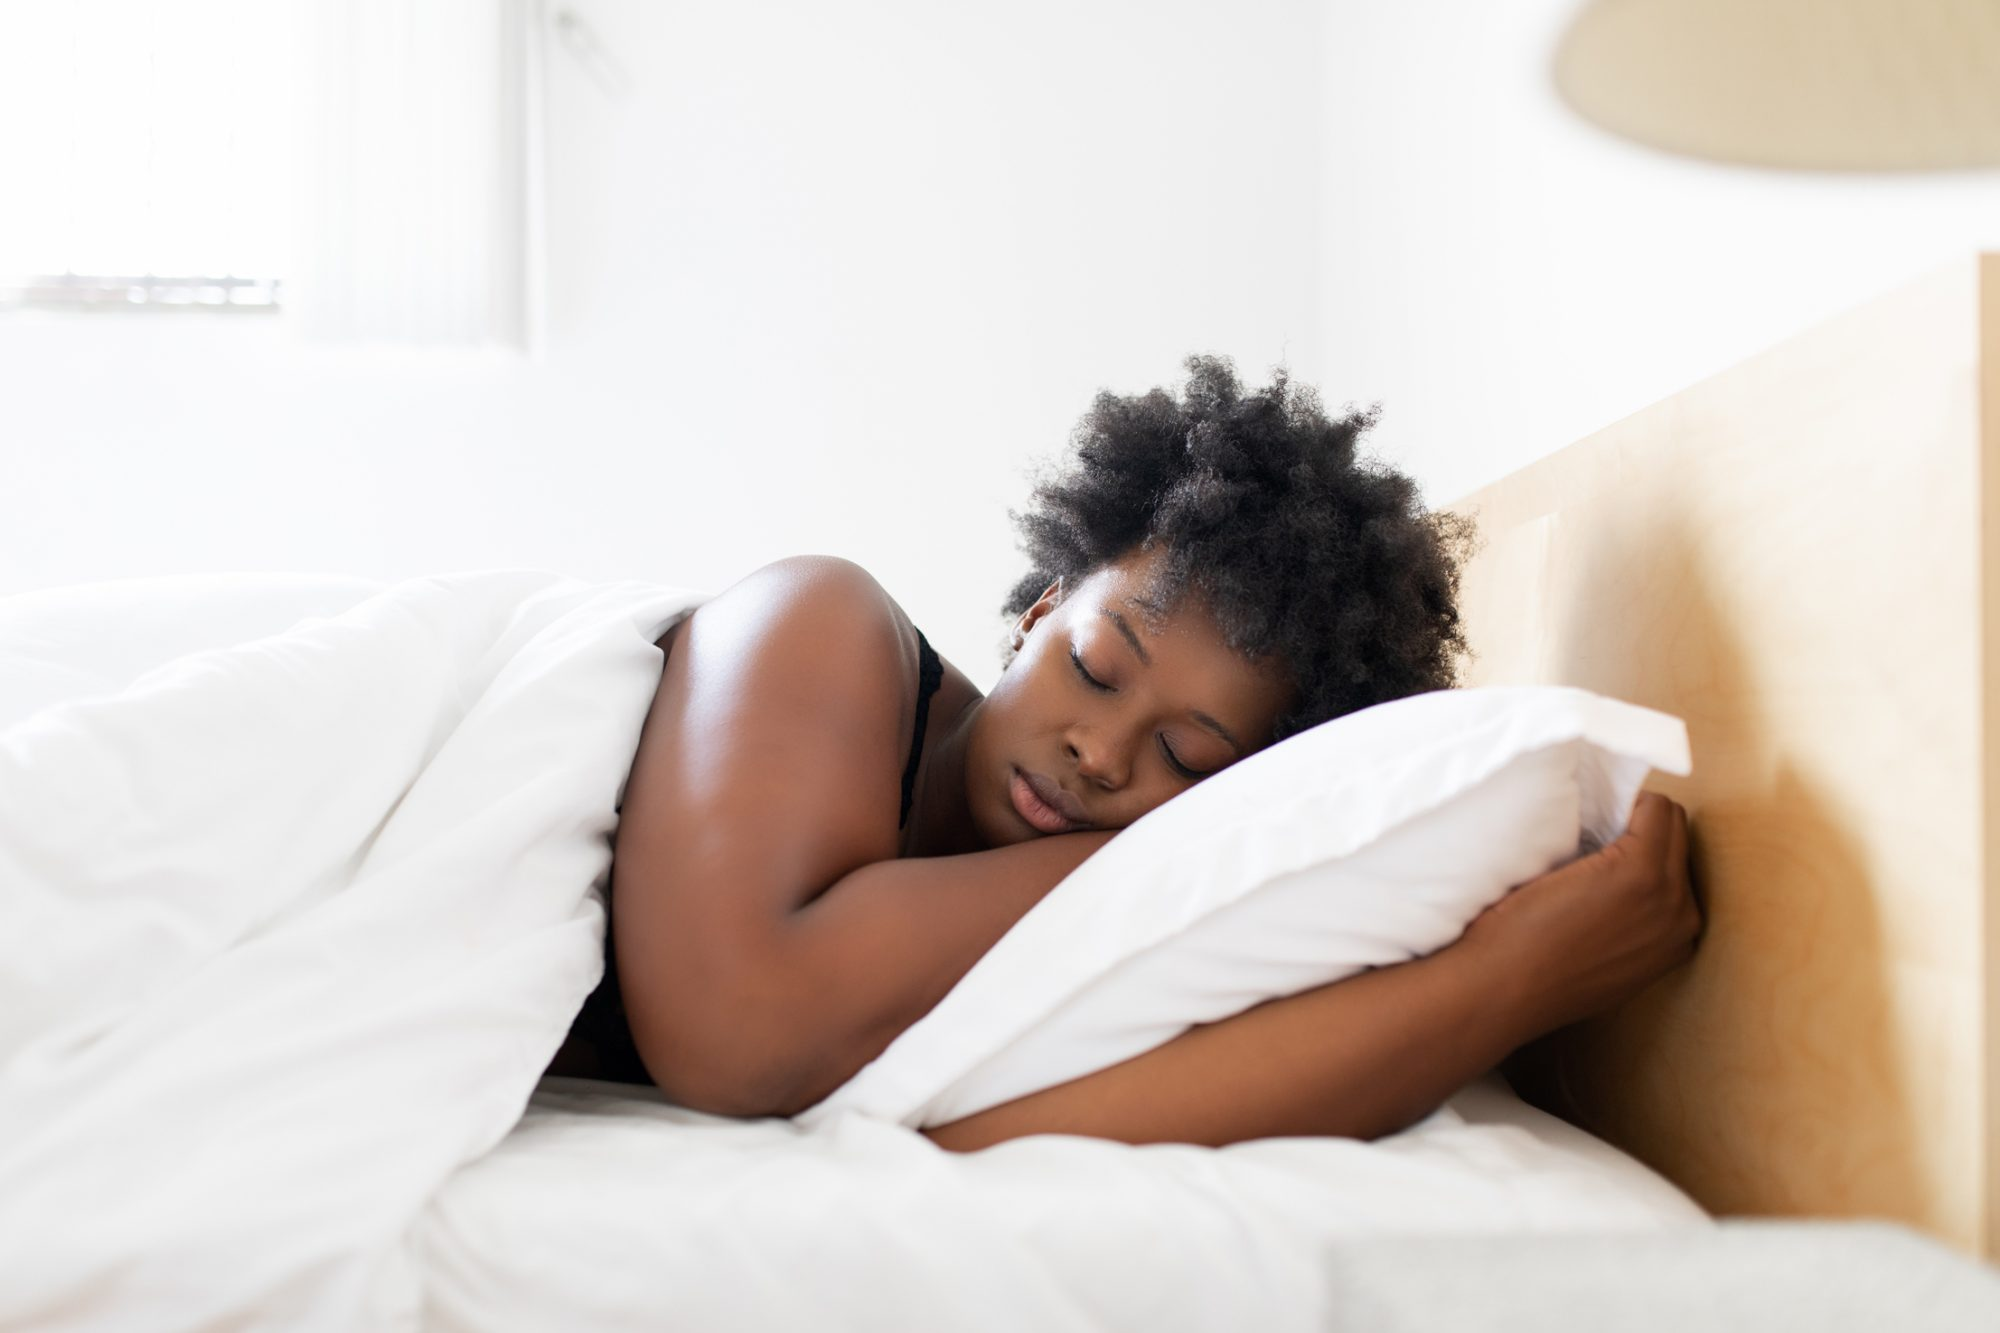 person sleeping in bed with white bedding